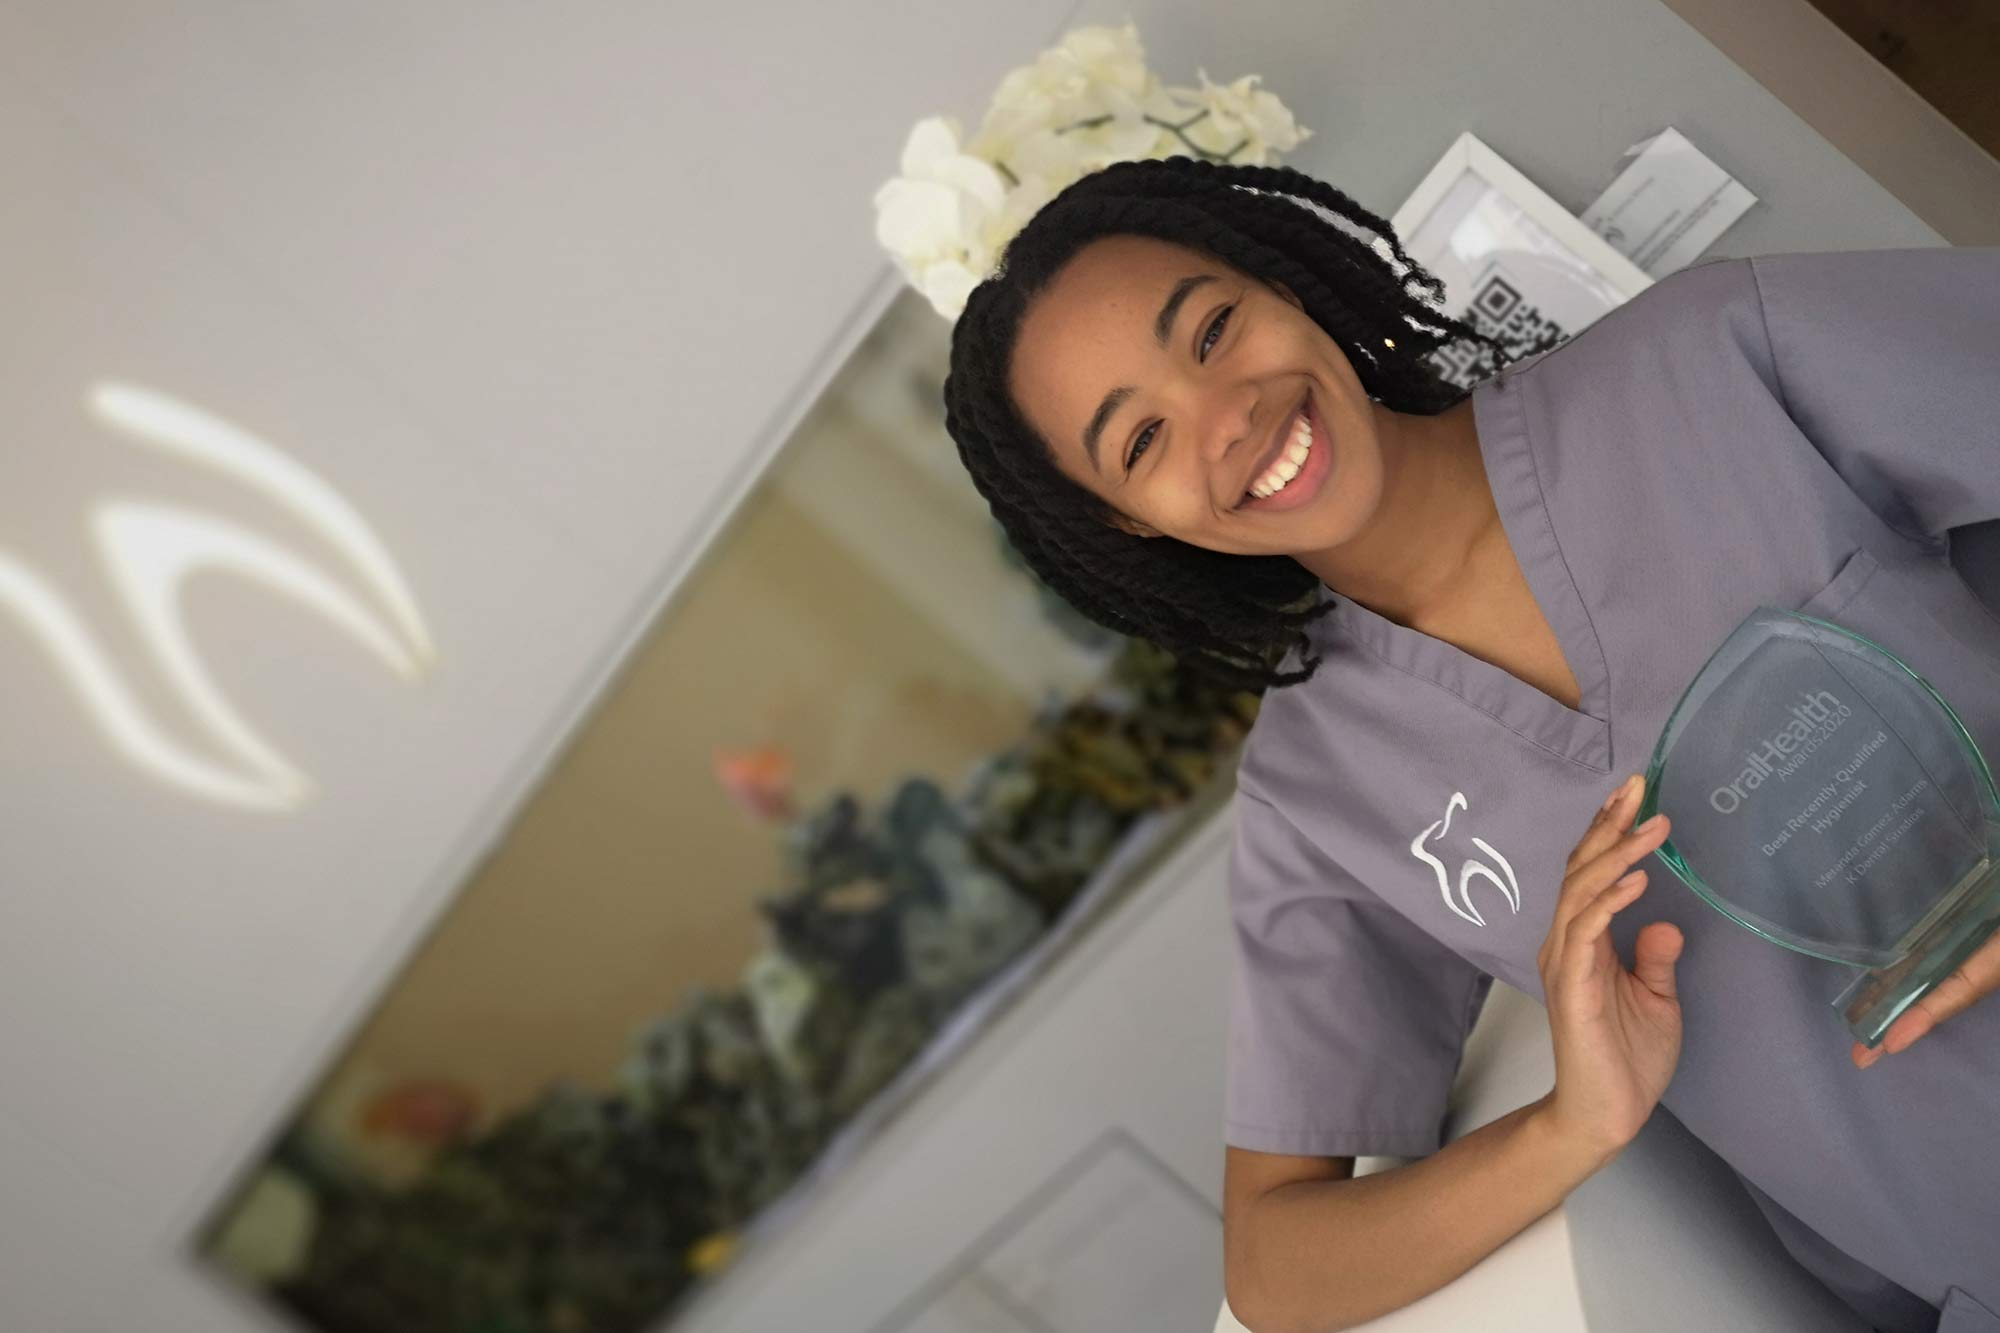 Meranda Gomez-Adams discusses what it was like taking home the Best Recently Qualified Hygienist accolade at the Oral Health Awards